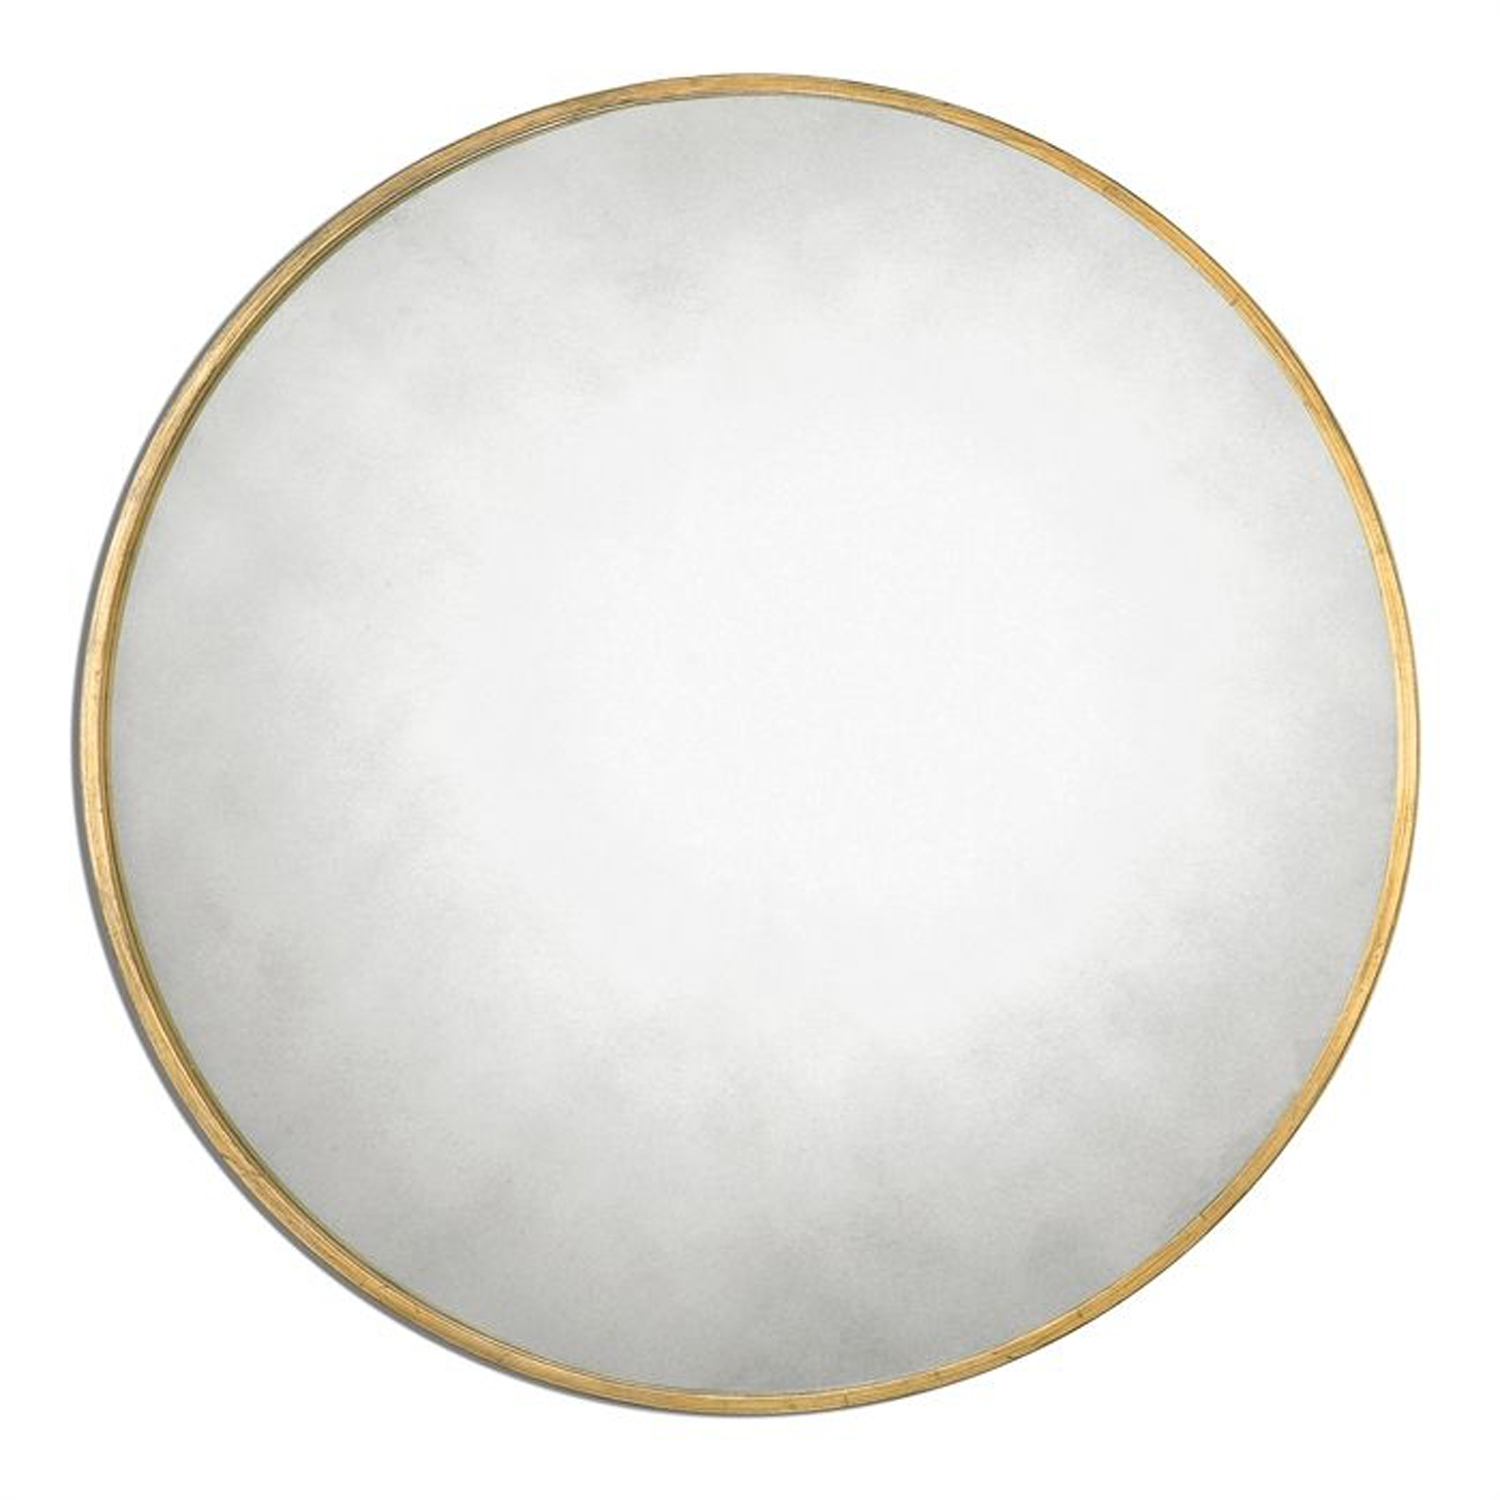 Junius Round Gold Round Mirror Uttermost Round Mirrors Home Decor Throughout Round Antique Mirror (Image 7 of 15)